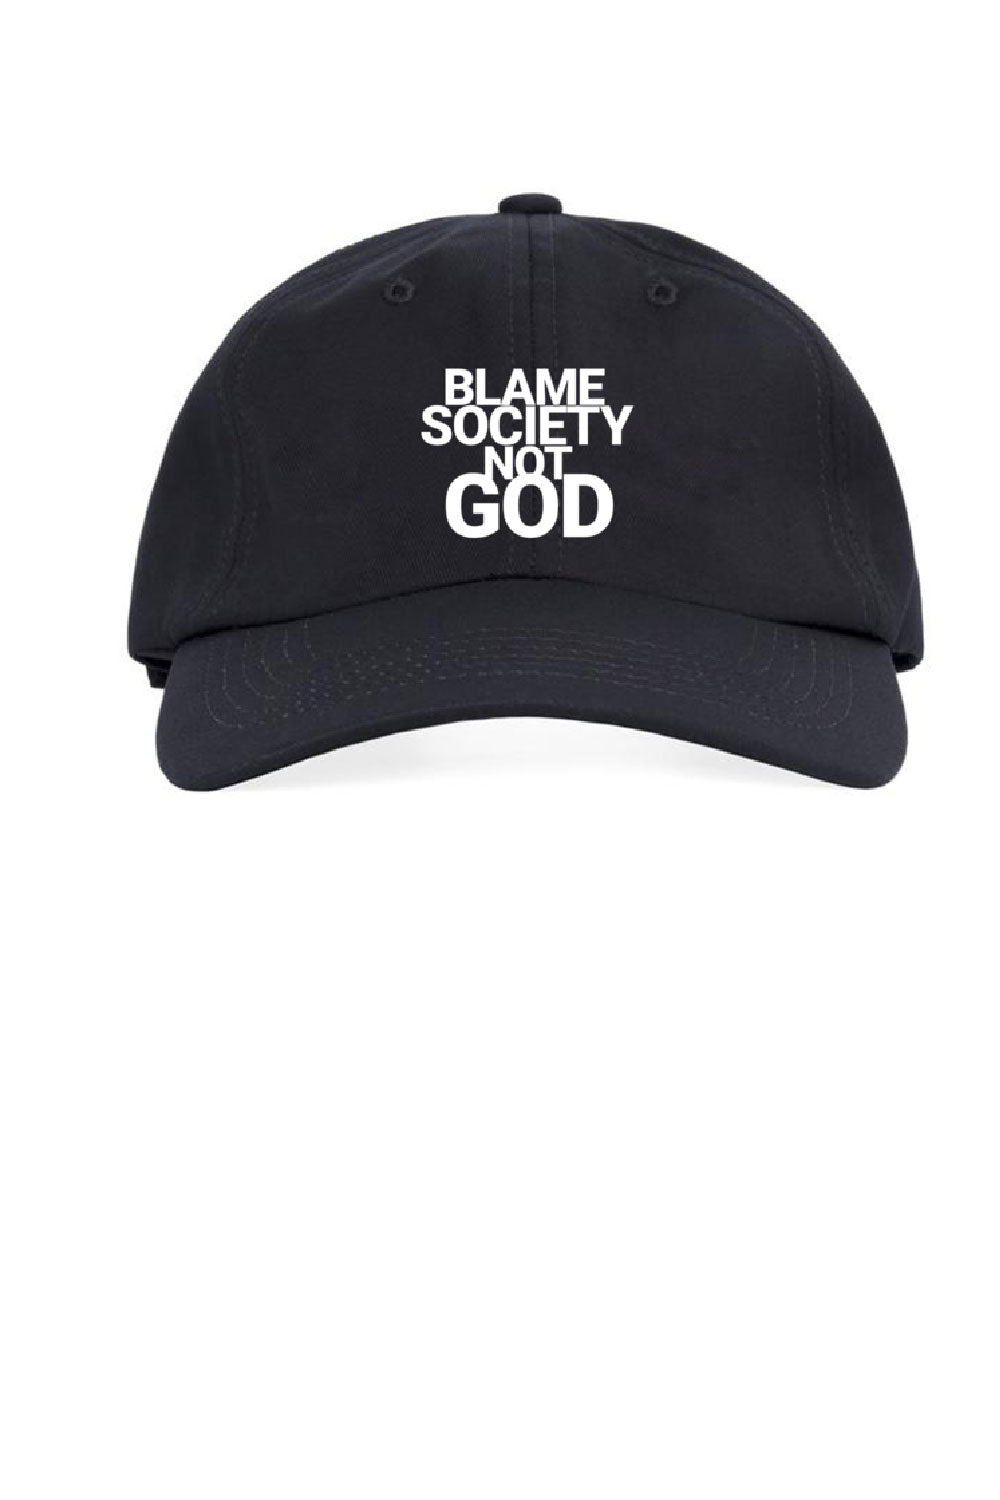 Blame Society Not God Classic Cap